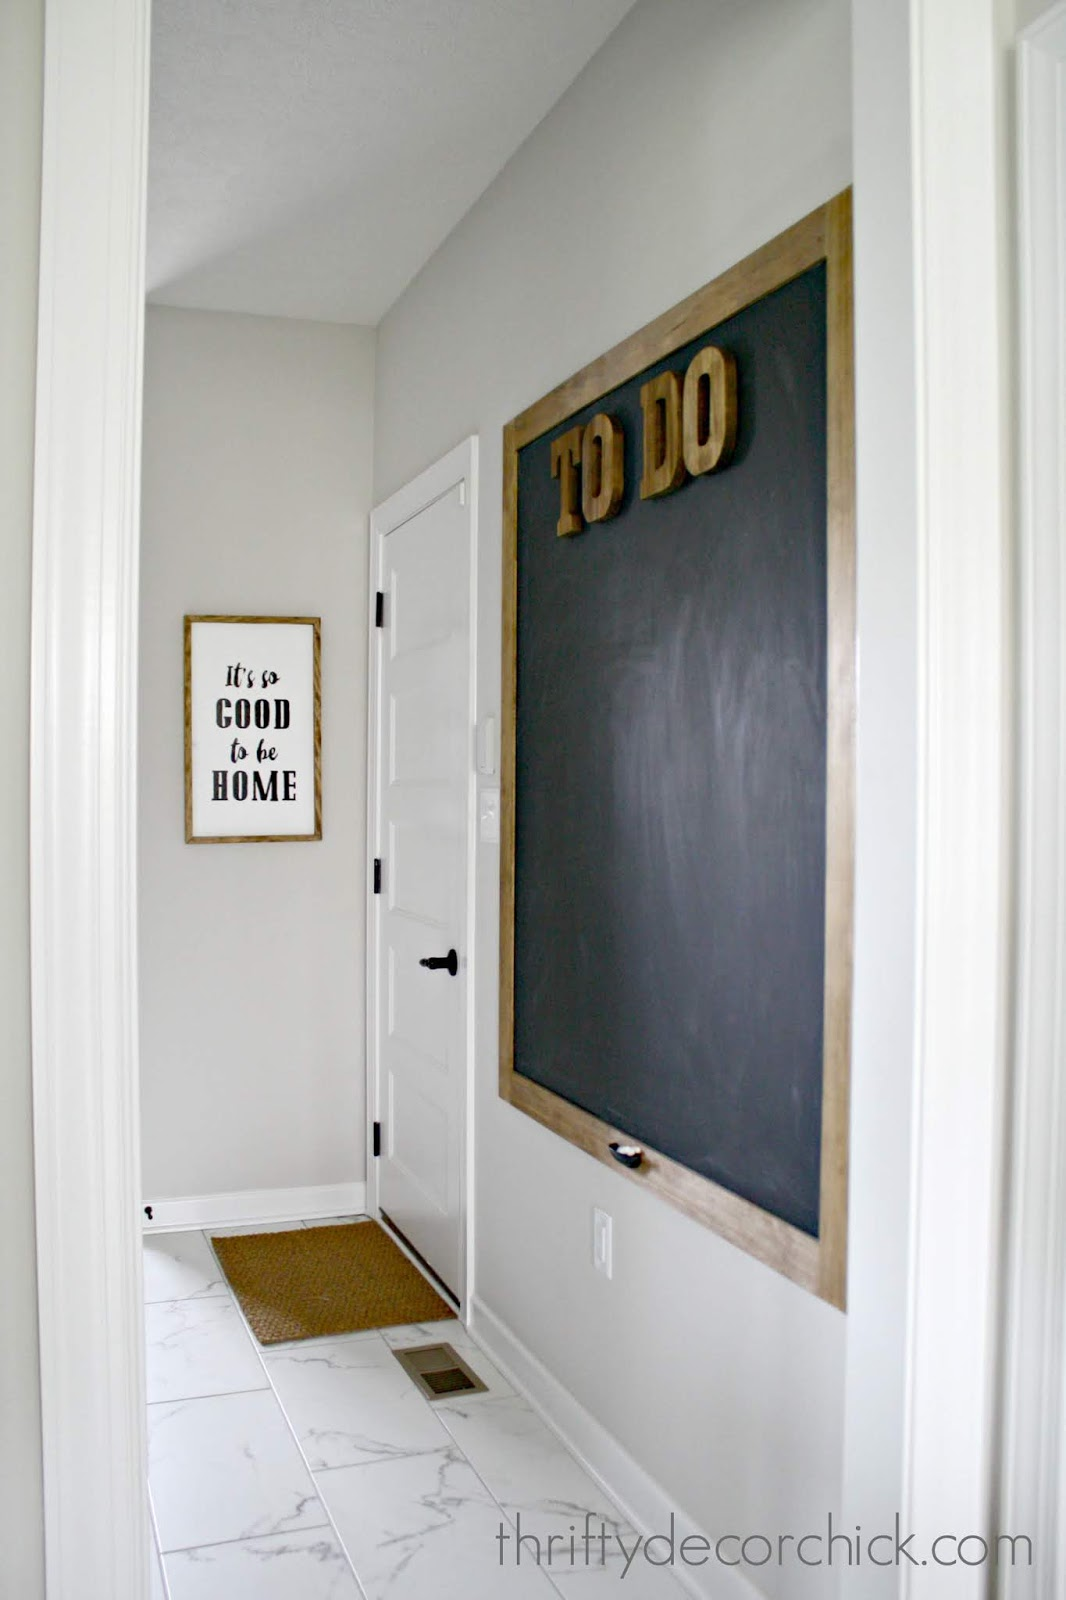 Large DIY chalkboard wall